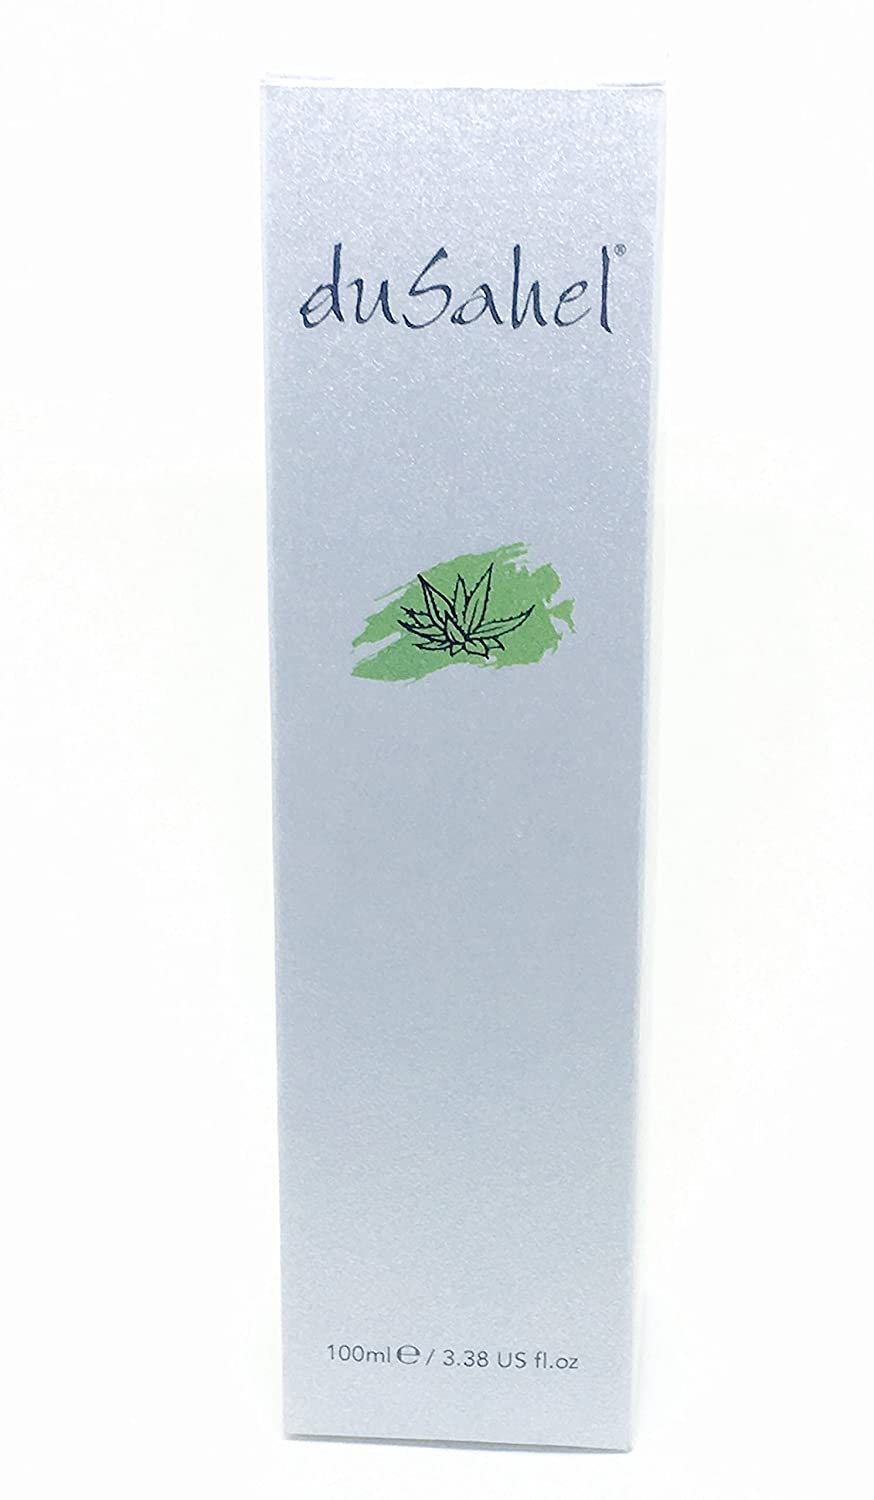 dusahel - Aloe Vera Puro 100% - Spray 100 ml: Amazon.es: Belleza